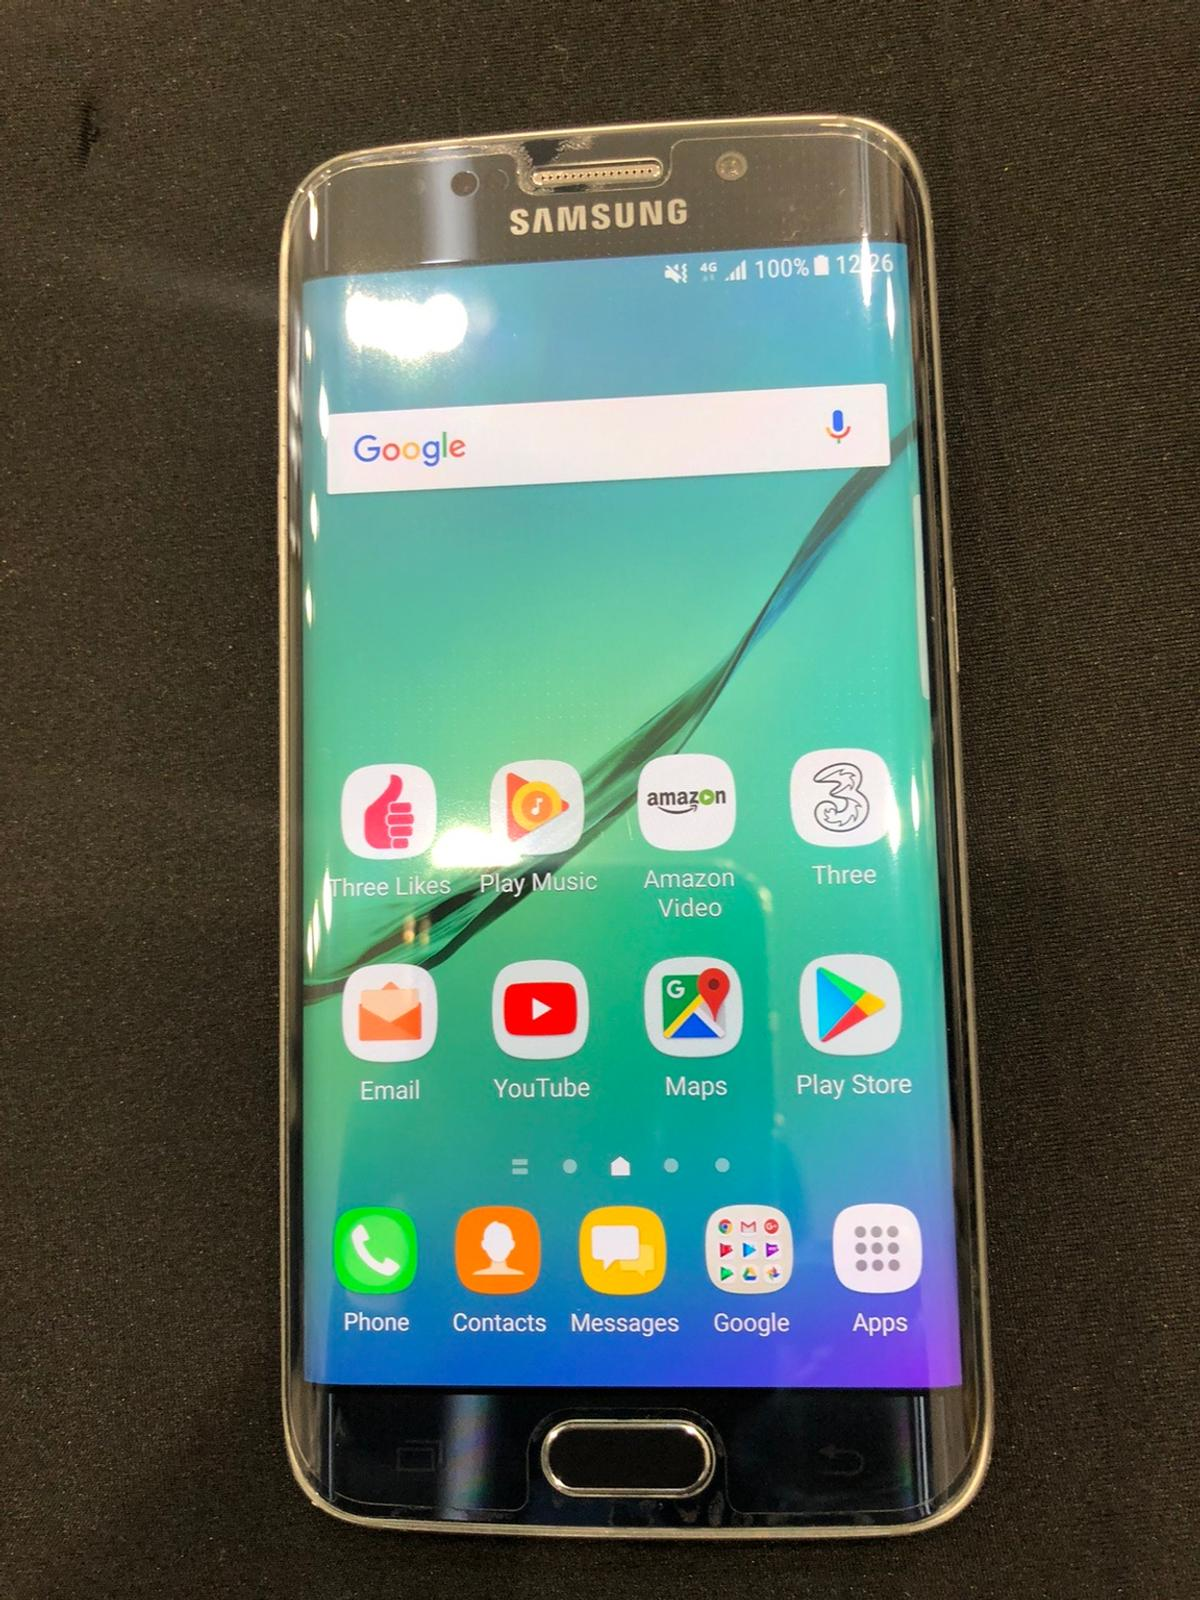 Hi here I have for sale Samsung galaxy S6 edge 64GB unlocked see condition pitchers for more details any question fell free to contact me thanks for looking. NO POSTAGE AVAILABLE plz don't ask PayPal payment or to post to anywhere this item is only for collections.